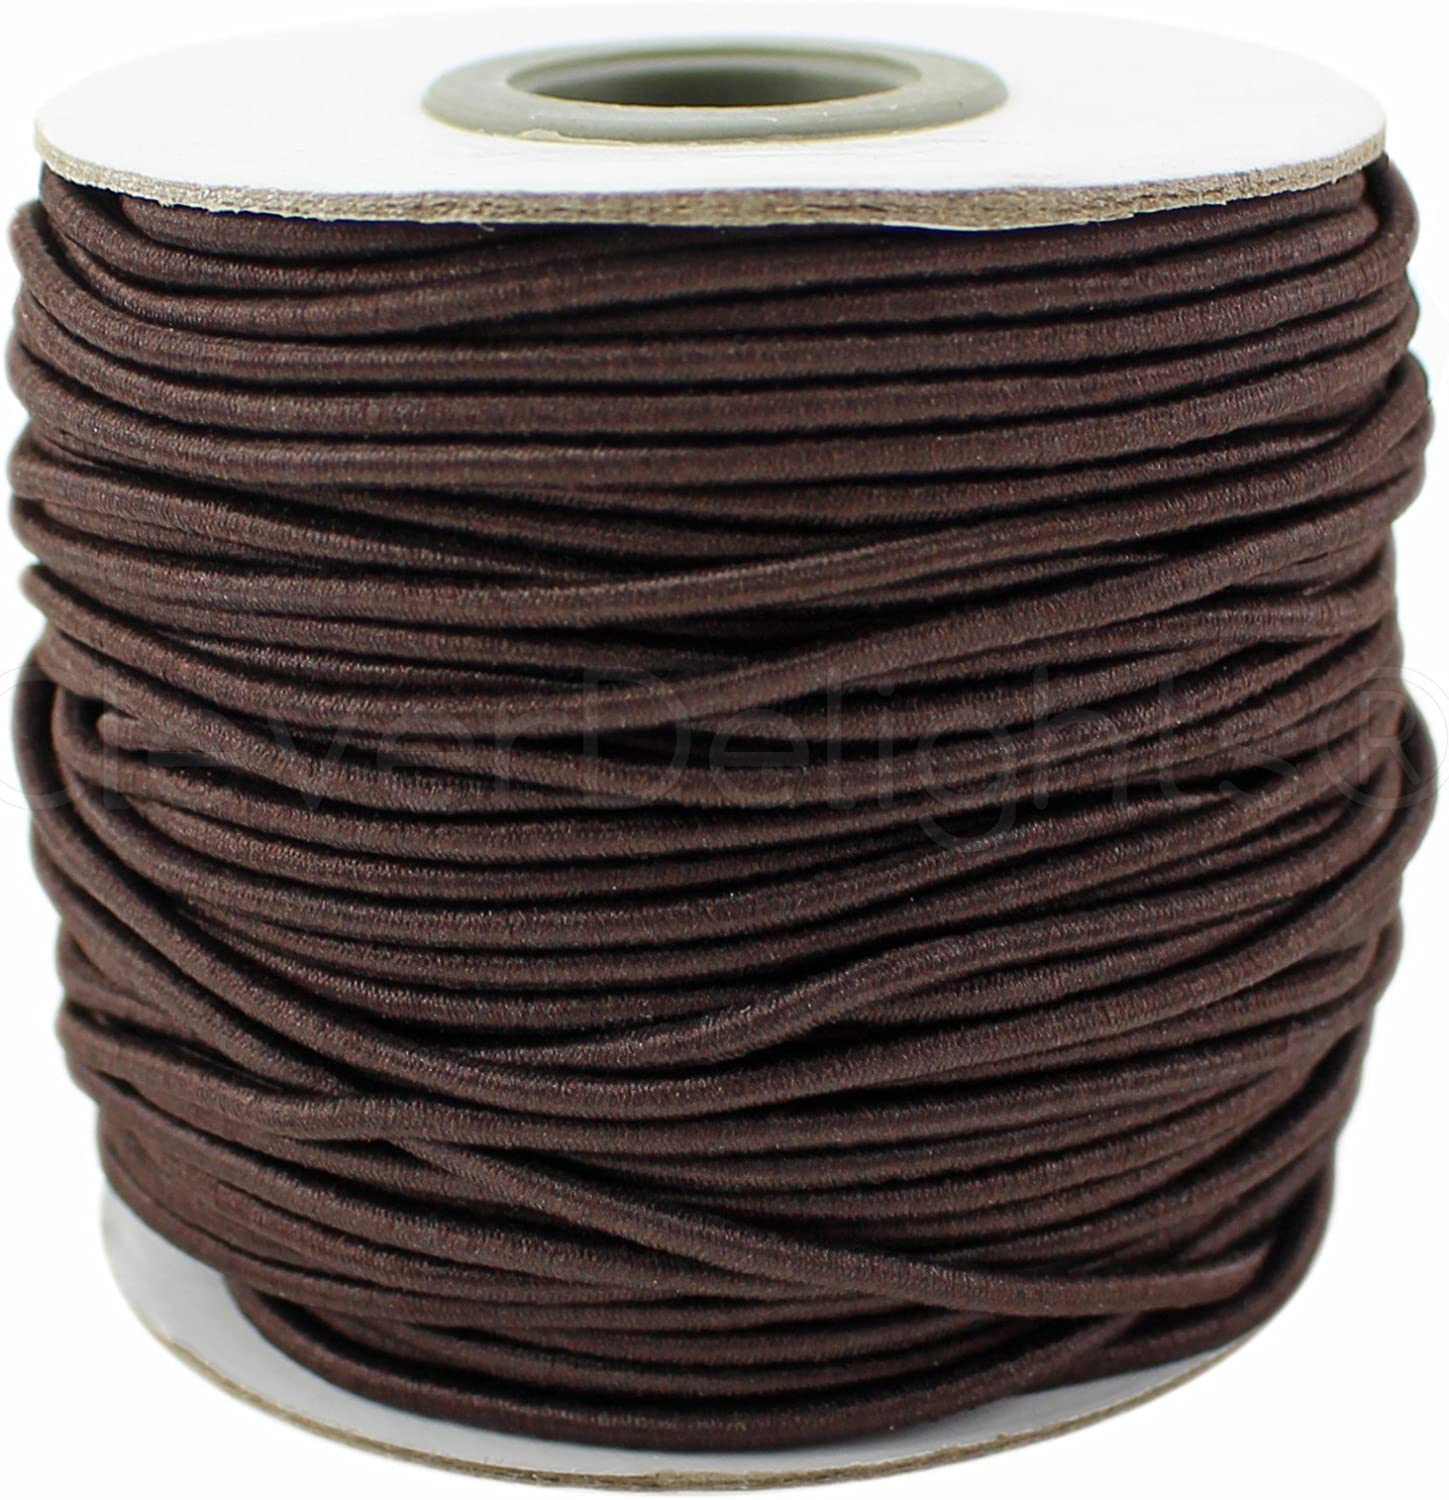 CleverDelights Max 44% OFF Brown Fabric Elastic New color Cord 2mm - 10 Yards Craf